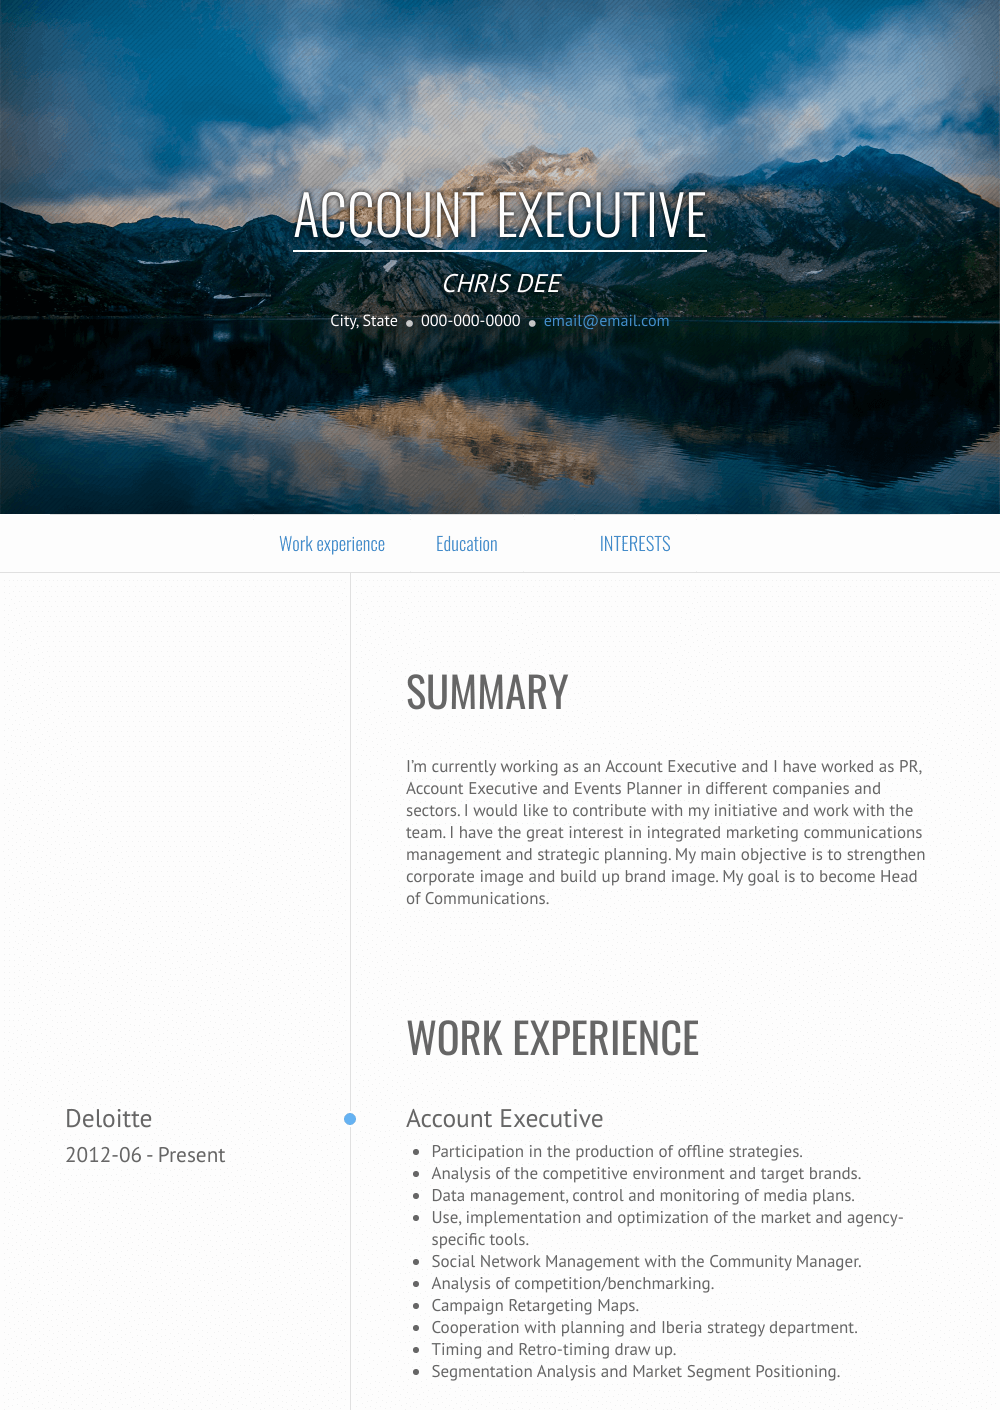 Account Executive Resume Samples Templates Visualcv